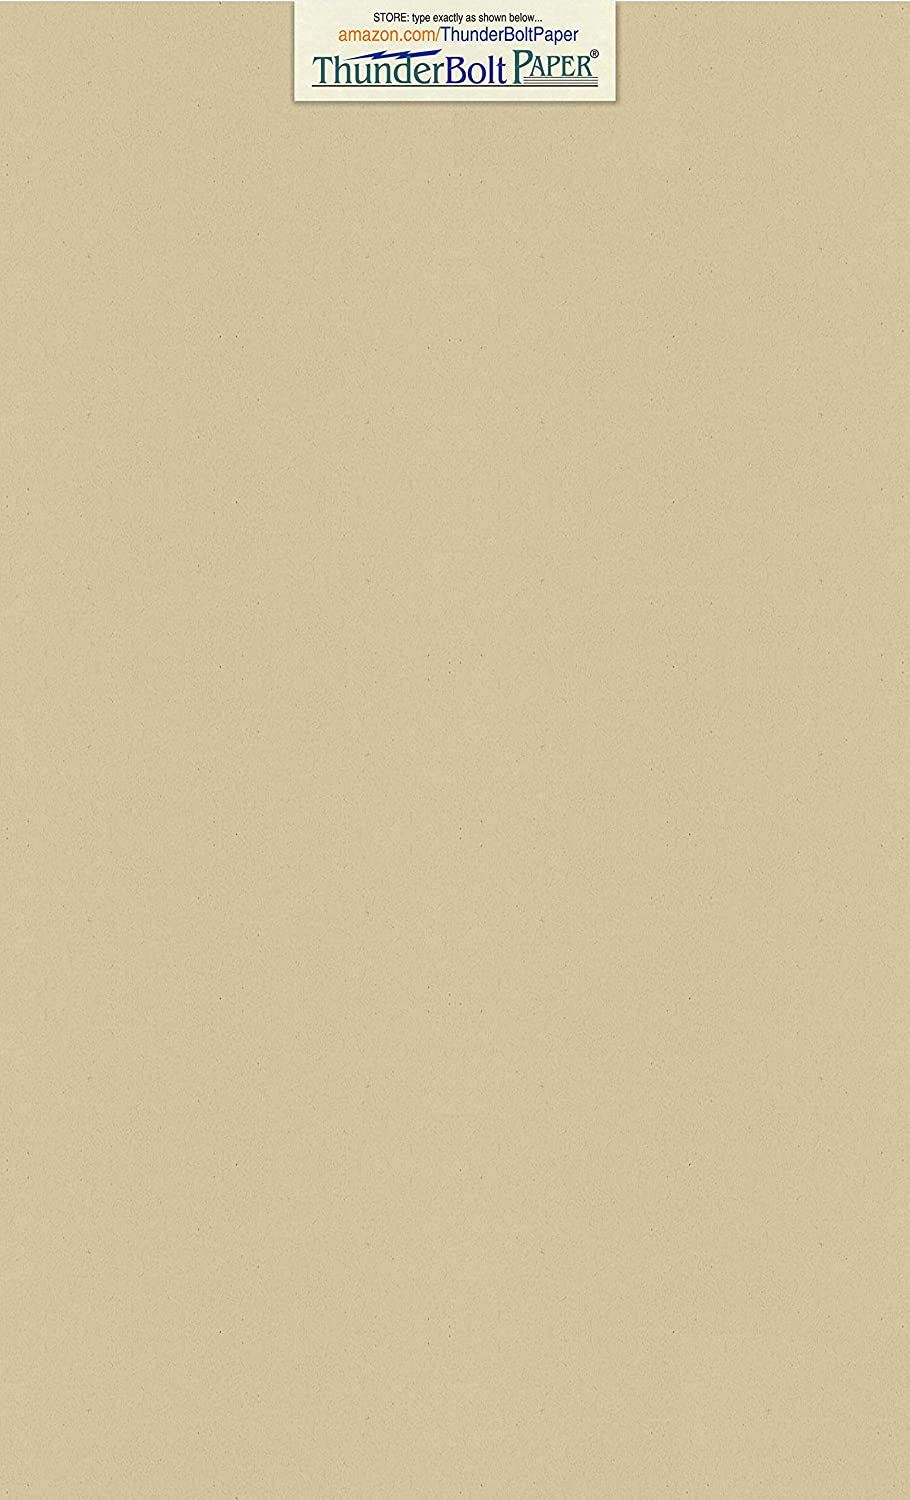 8.5 X 11-80lb Pound Weight Letter Size NOT Card//Cover 250 Desert Tan Fiber Finish 32//80# Text Smooth Finish Paper Sheets Natural Fibers with Darker Specks